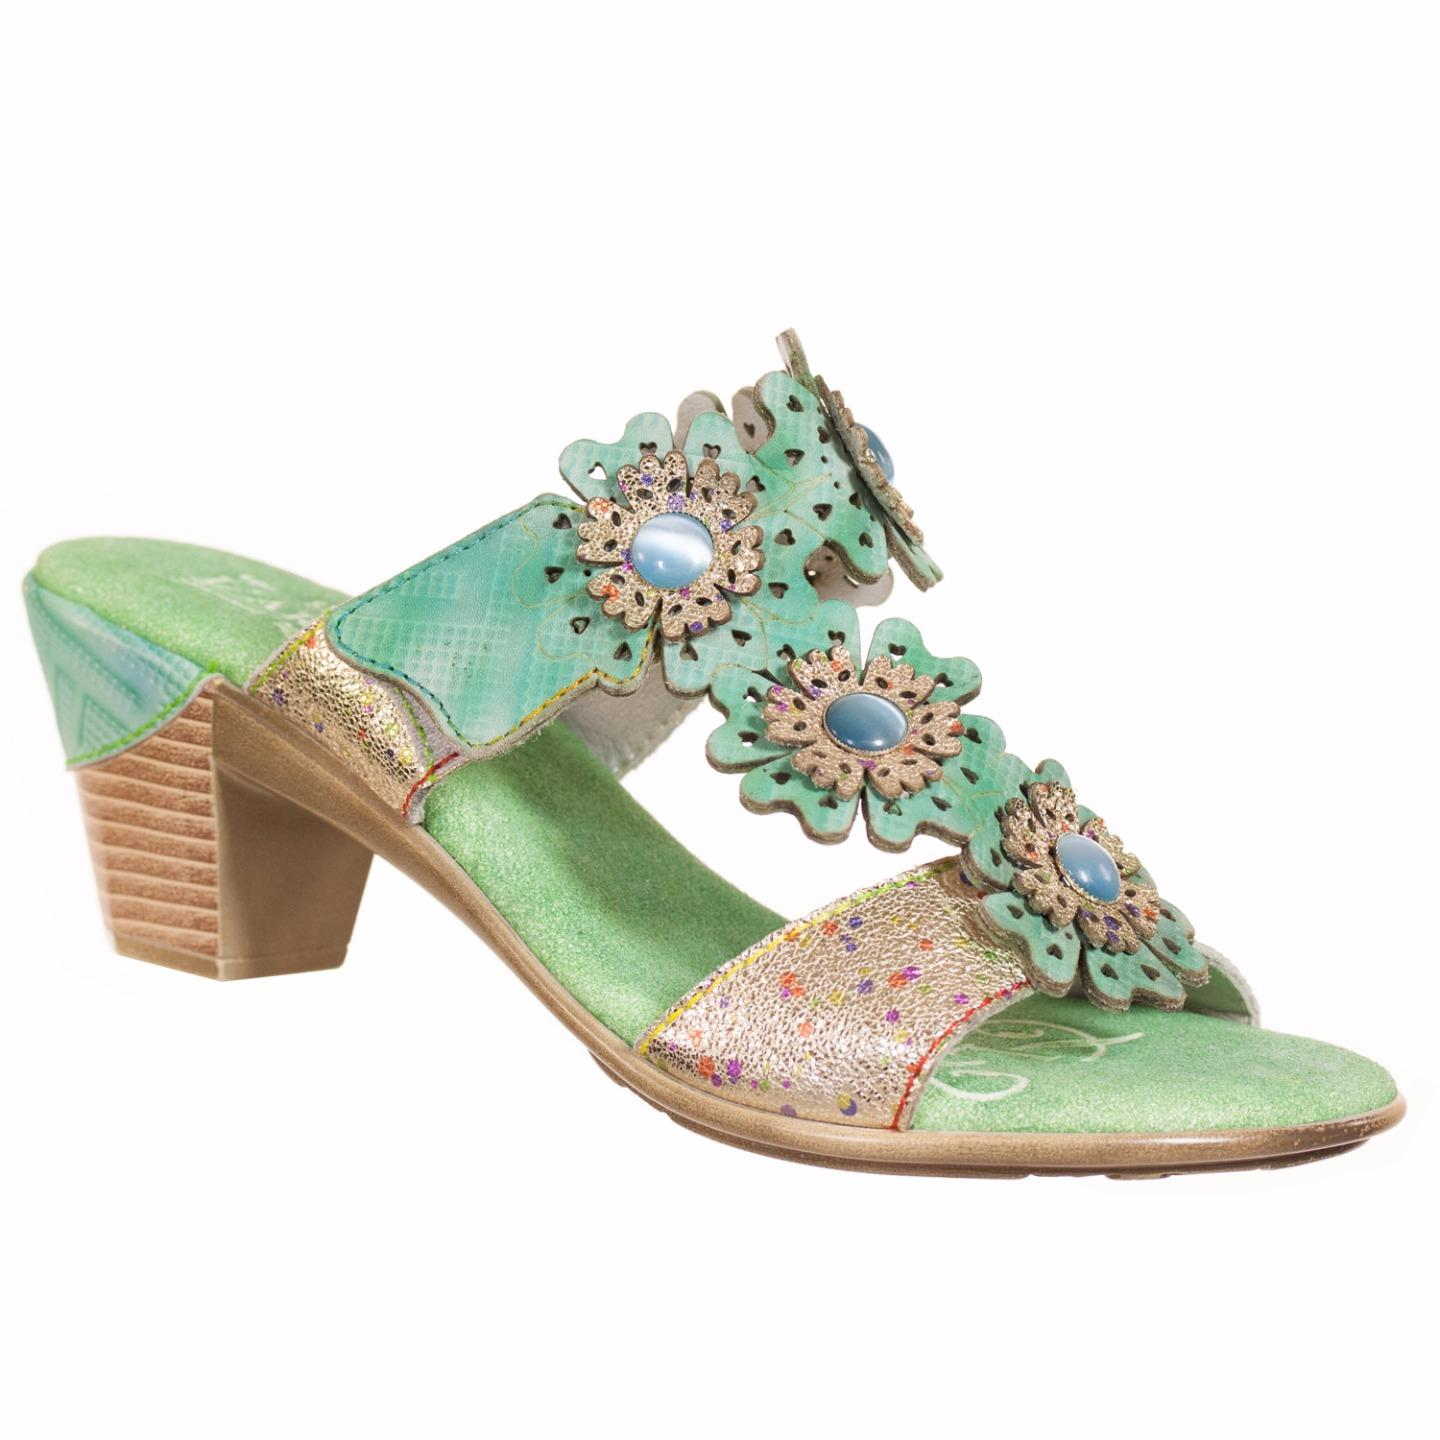 Brasi L'Artiste Collection By Spring Step Women's Sandal Green multi EU 37 US 7 by Spring Step